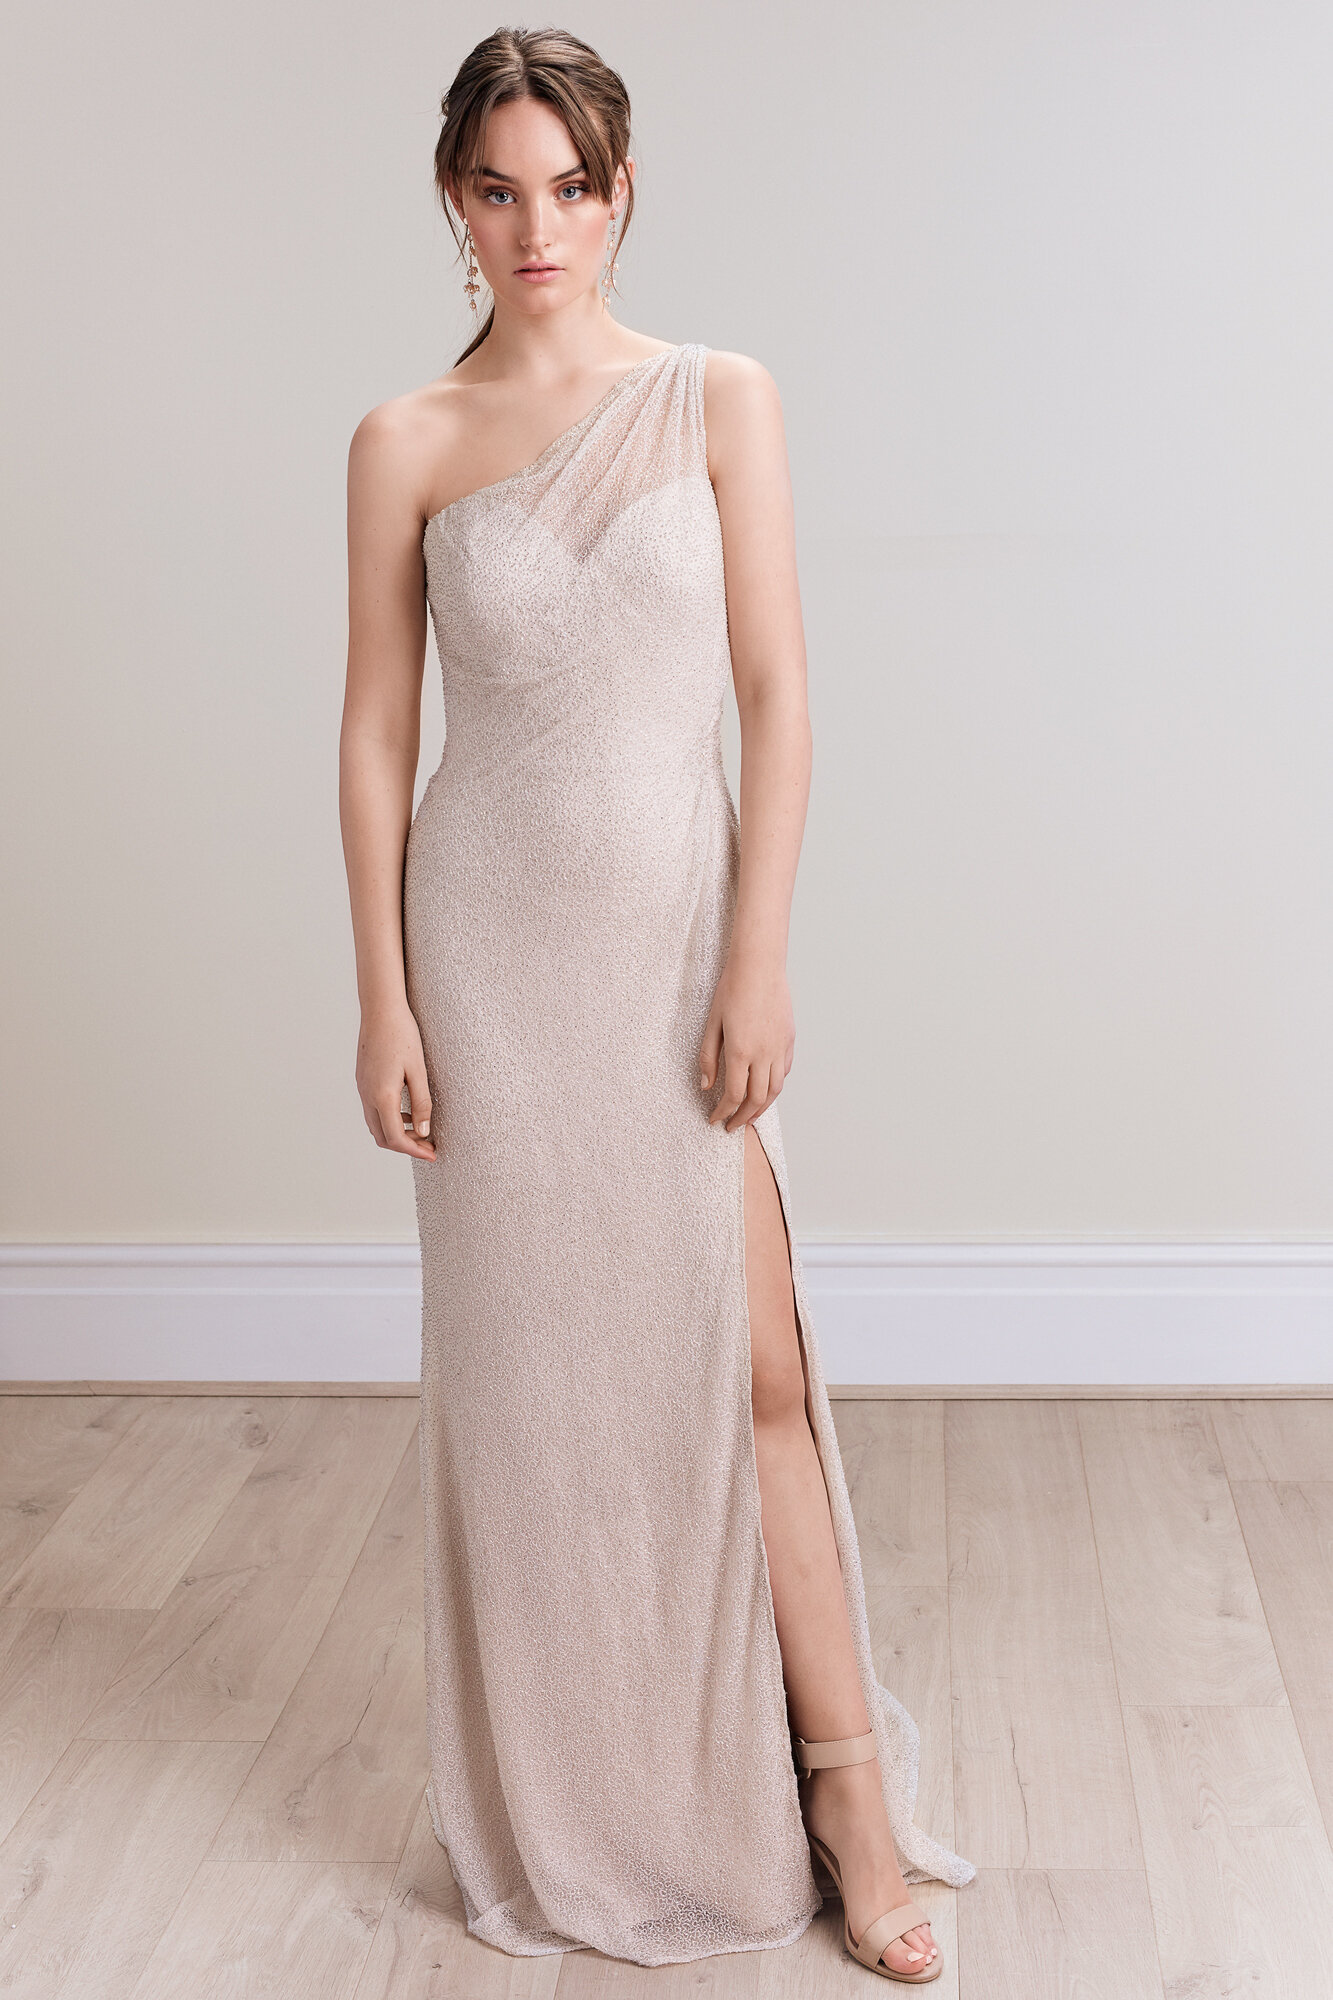 Sarina_Tavra_Bridal_Couture_2020_Collection_Madison_Gown_01